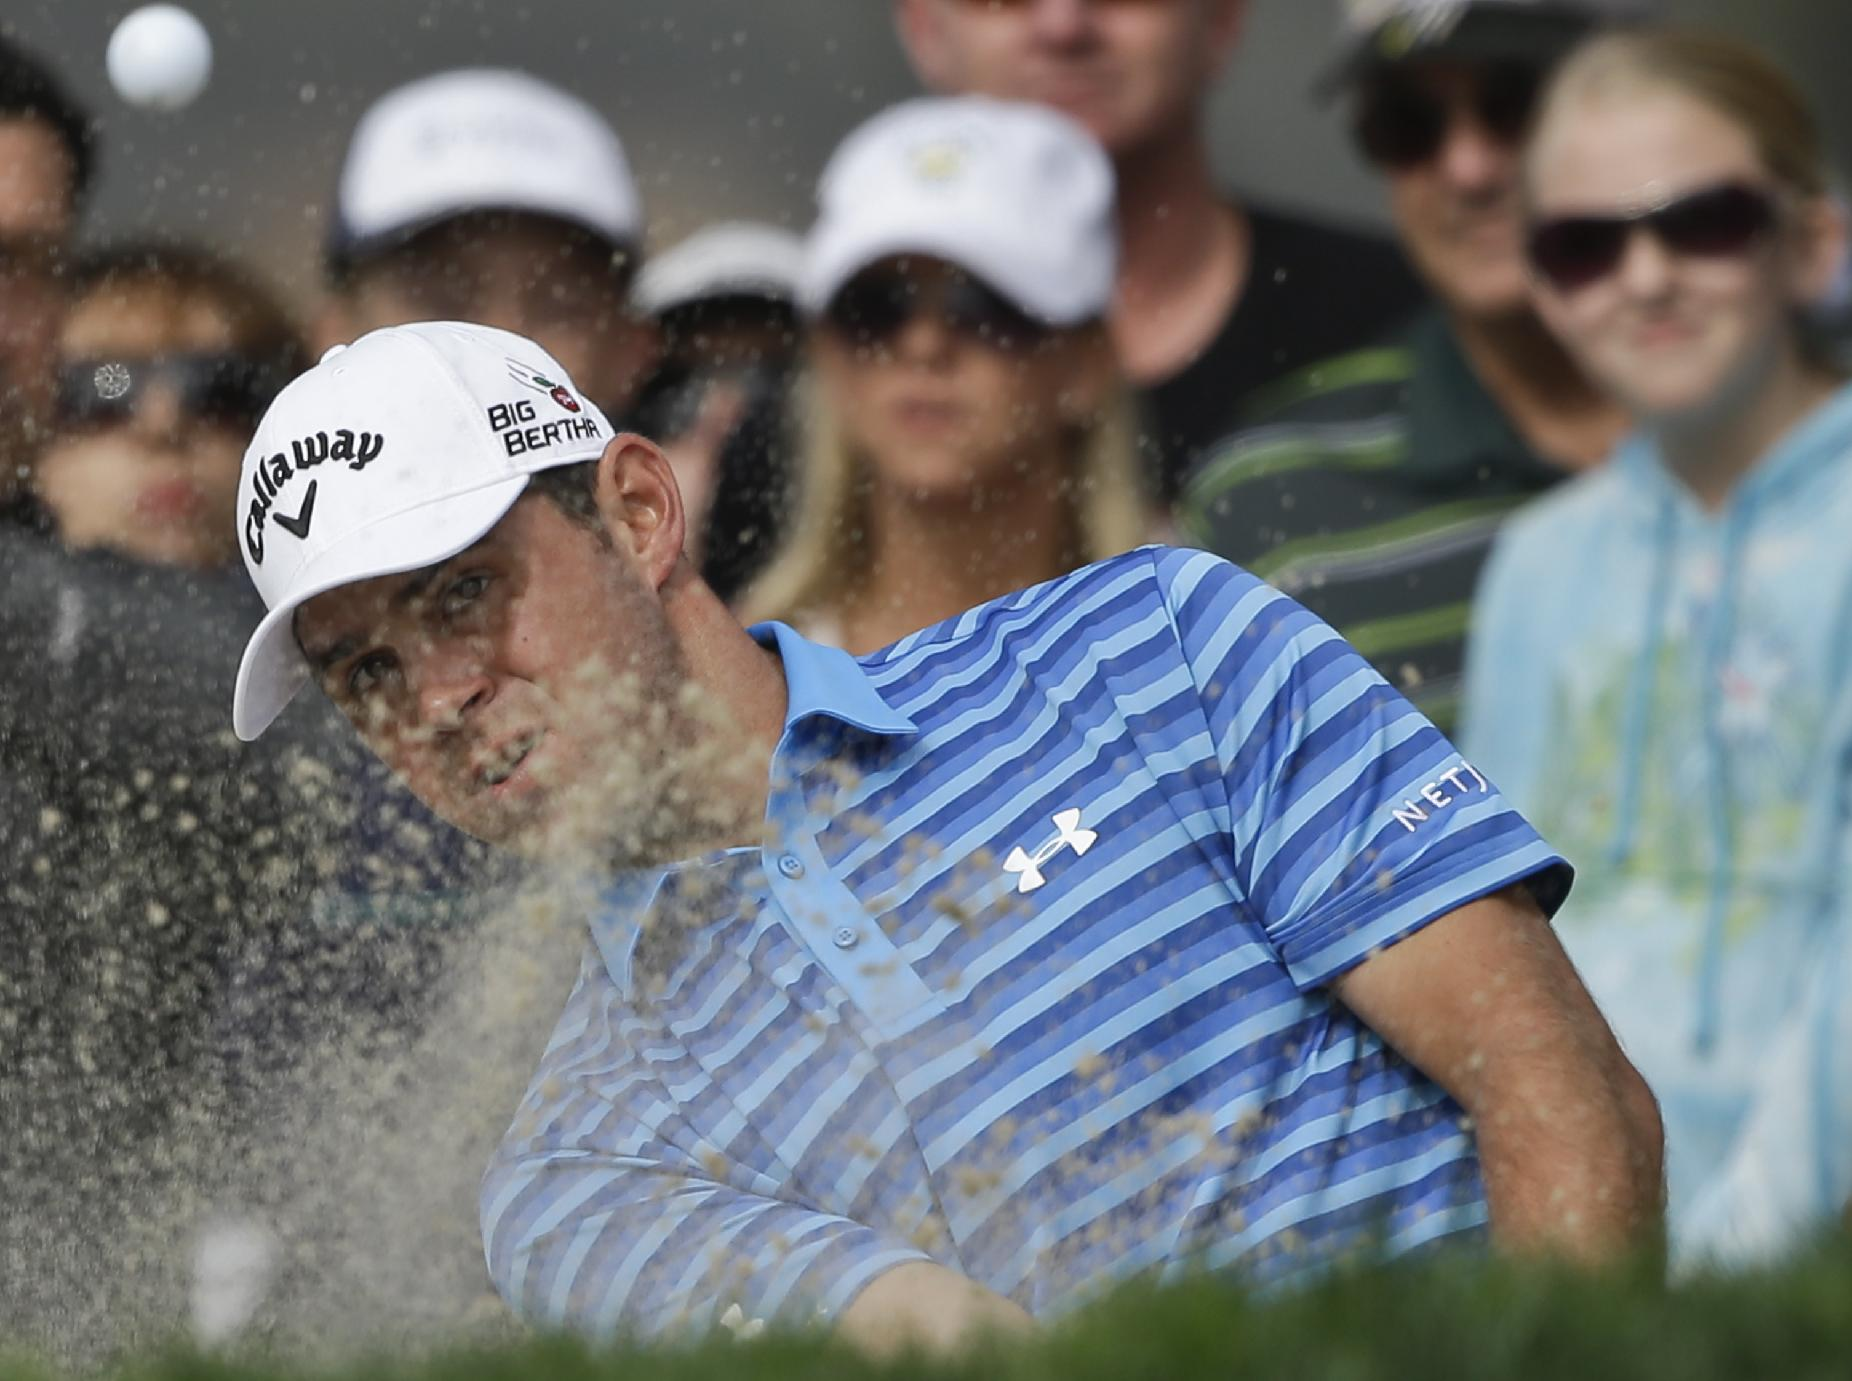 Gary Woodland shoots from the bunker on sixth hole of the South Course at Torrey Pines during the final round of the Farmers Insurance Open golf tournament Sunday, Jan. 26, 2014, in San Diego